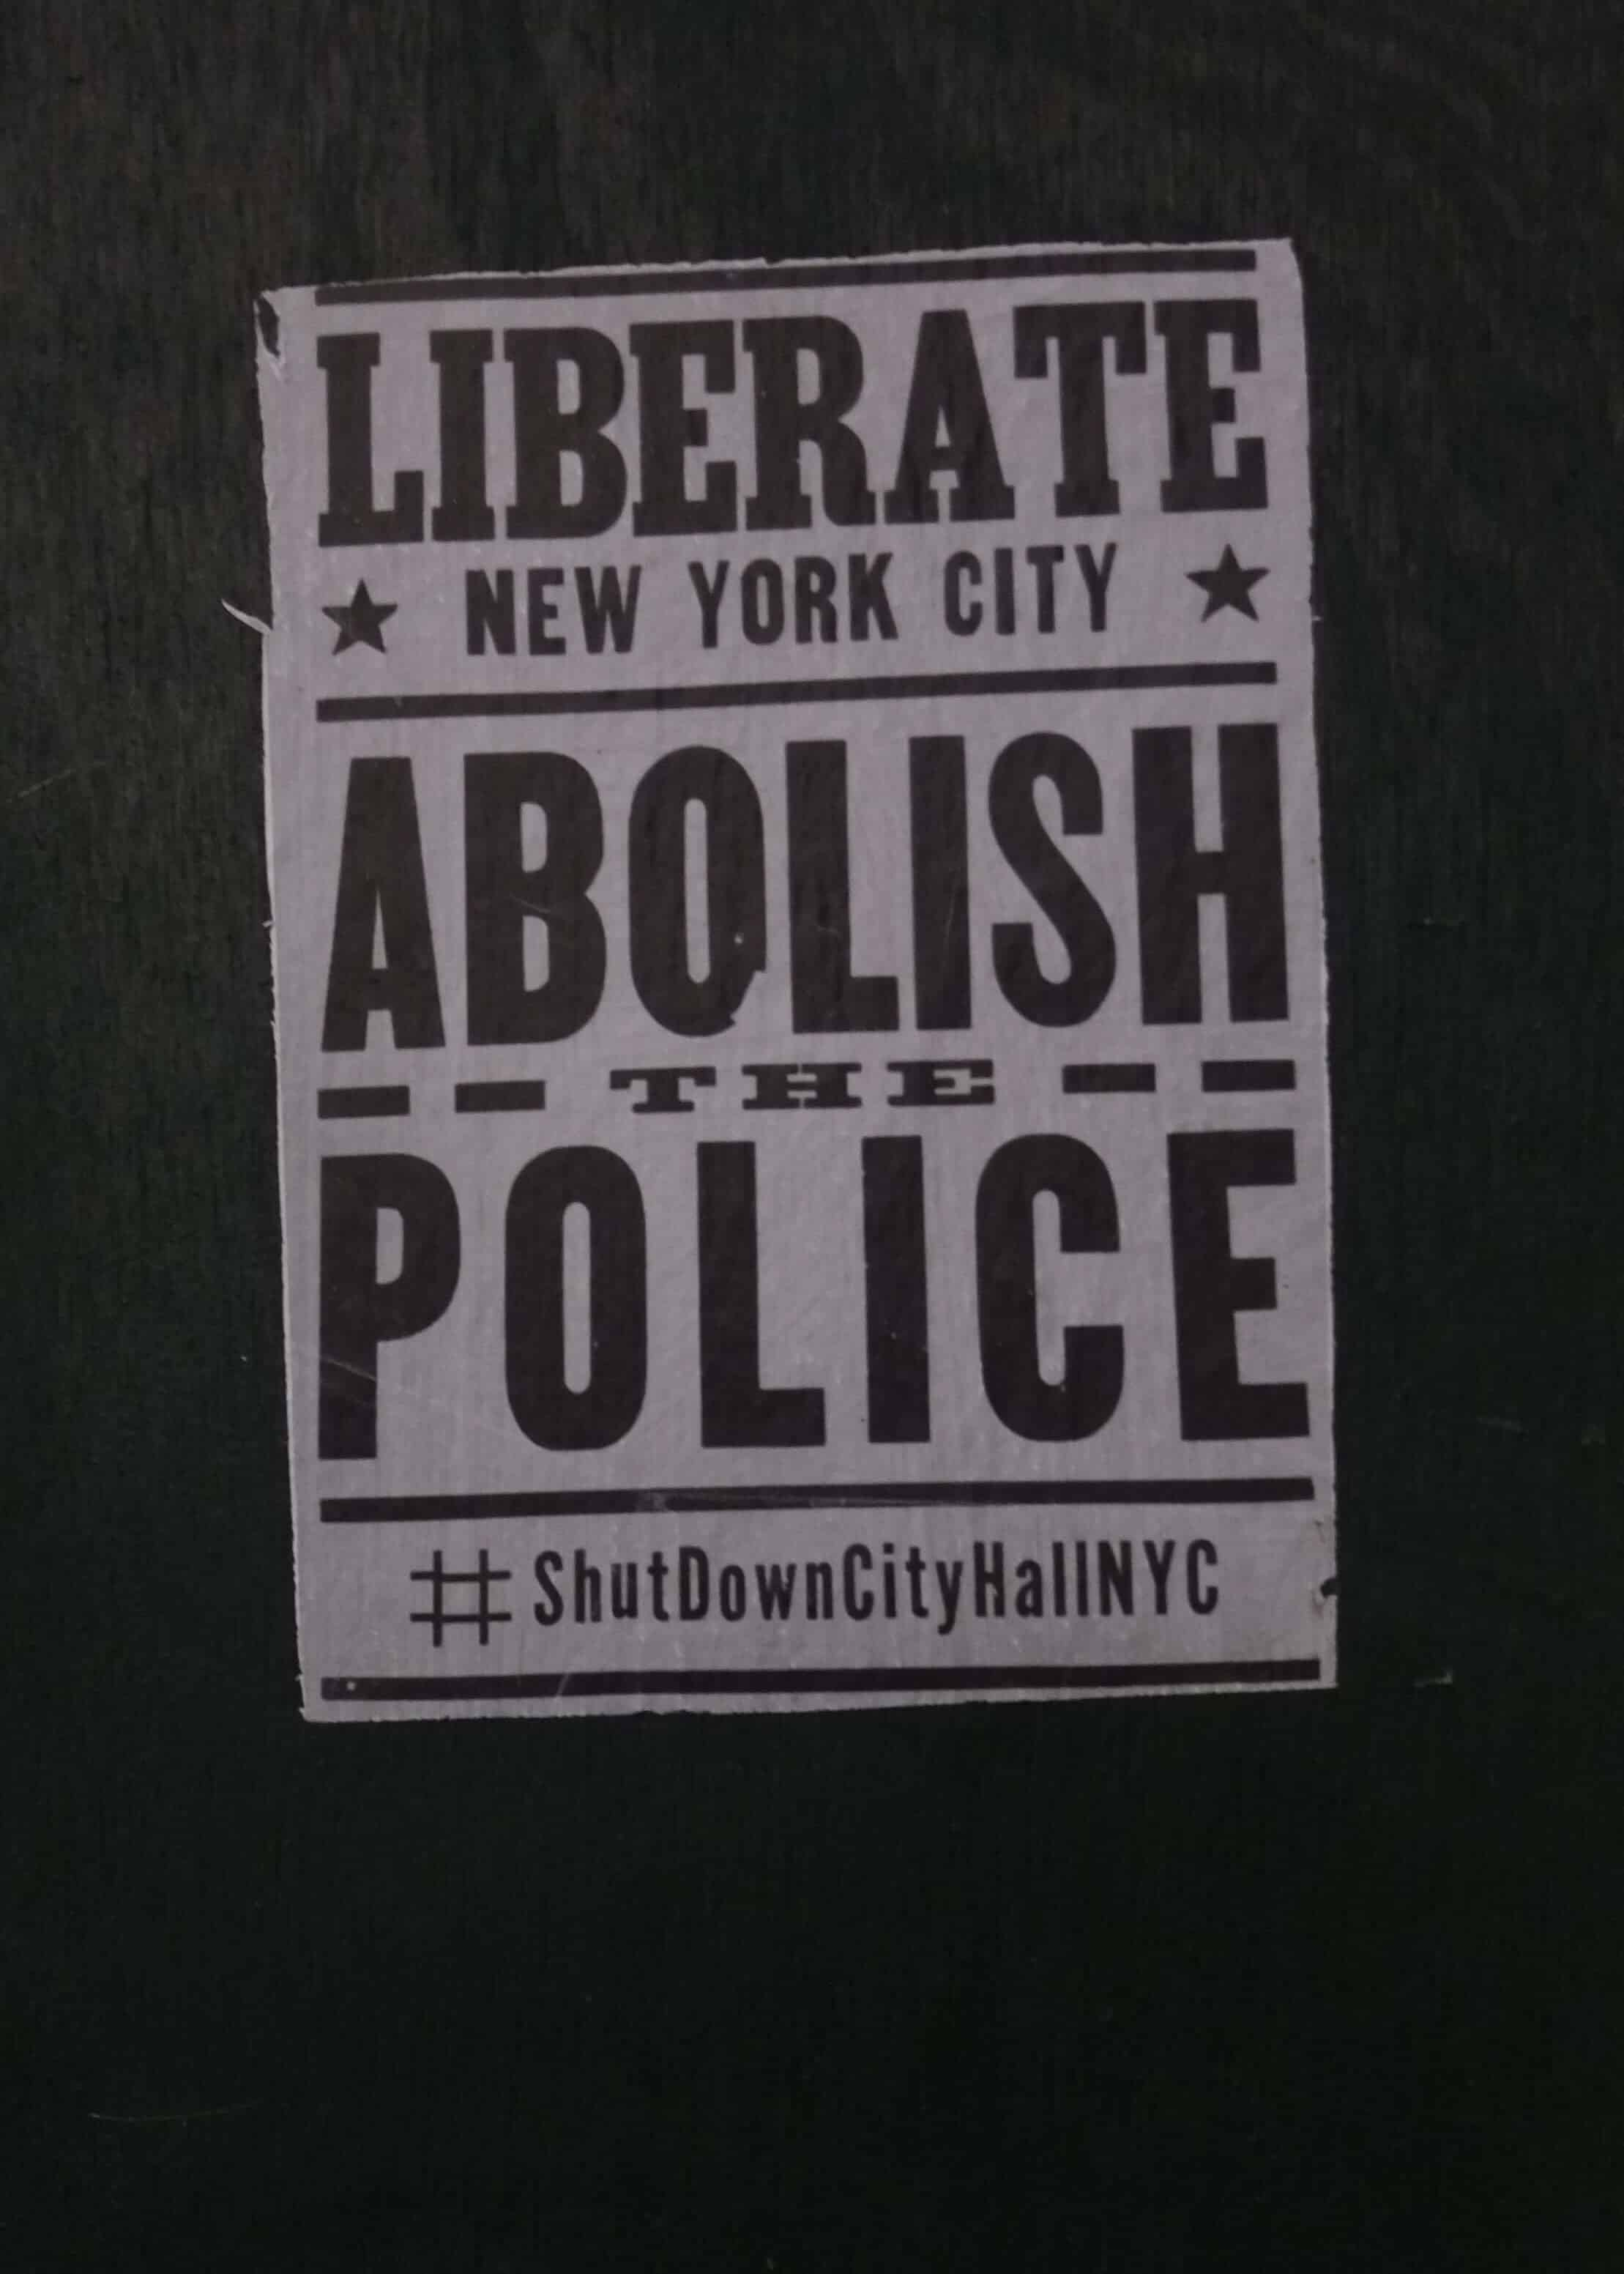 A sign on a black background that reads LIBERATE NEW YORK CITY, ABOLISH THE POLICE, #ShutDownCityHallNYC